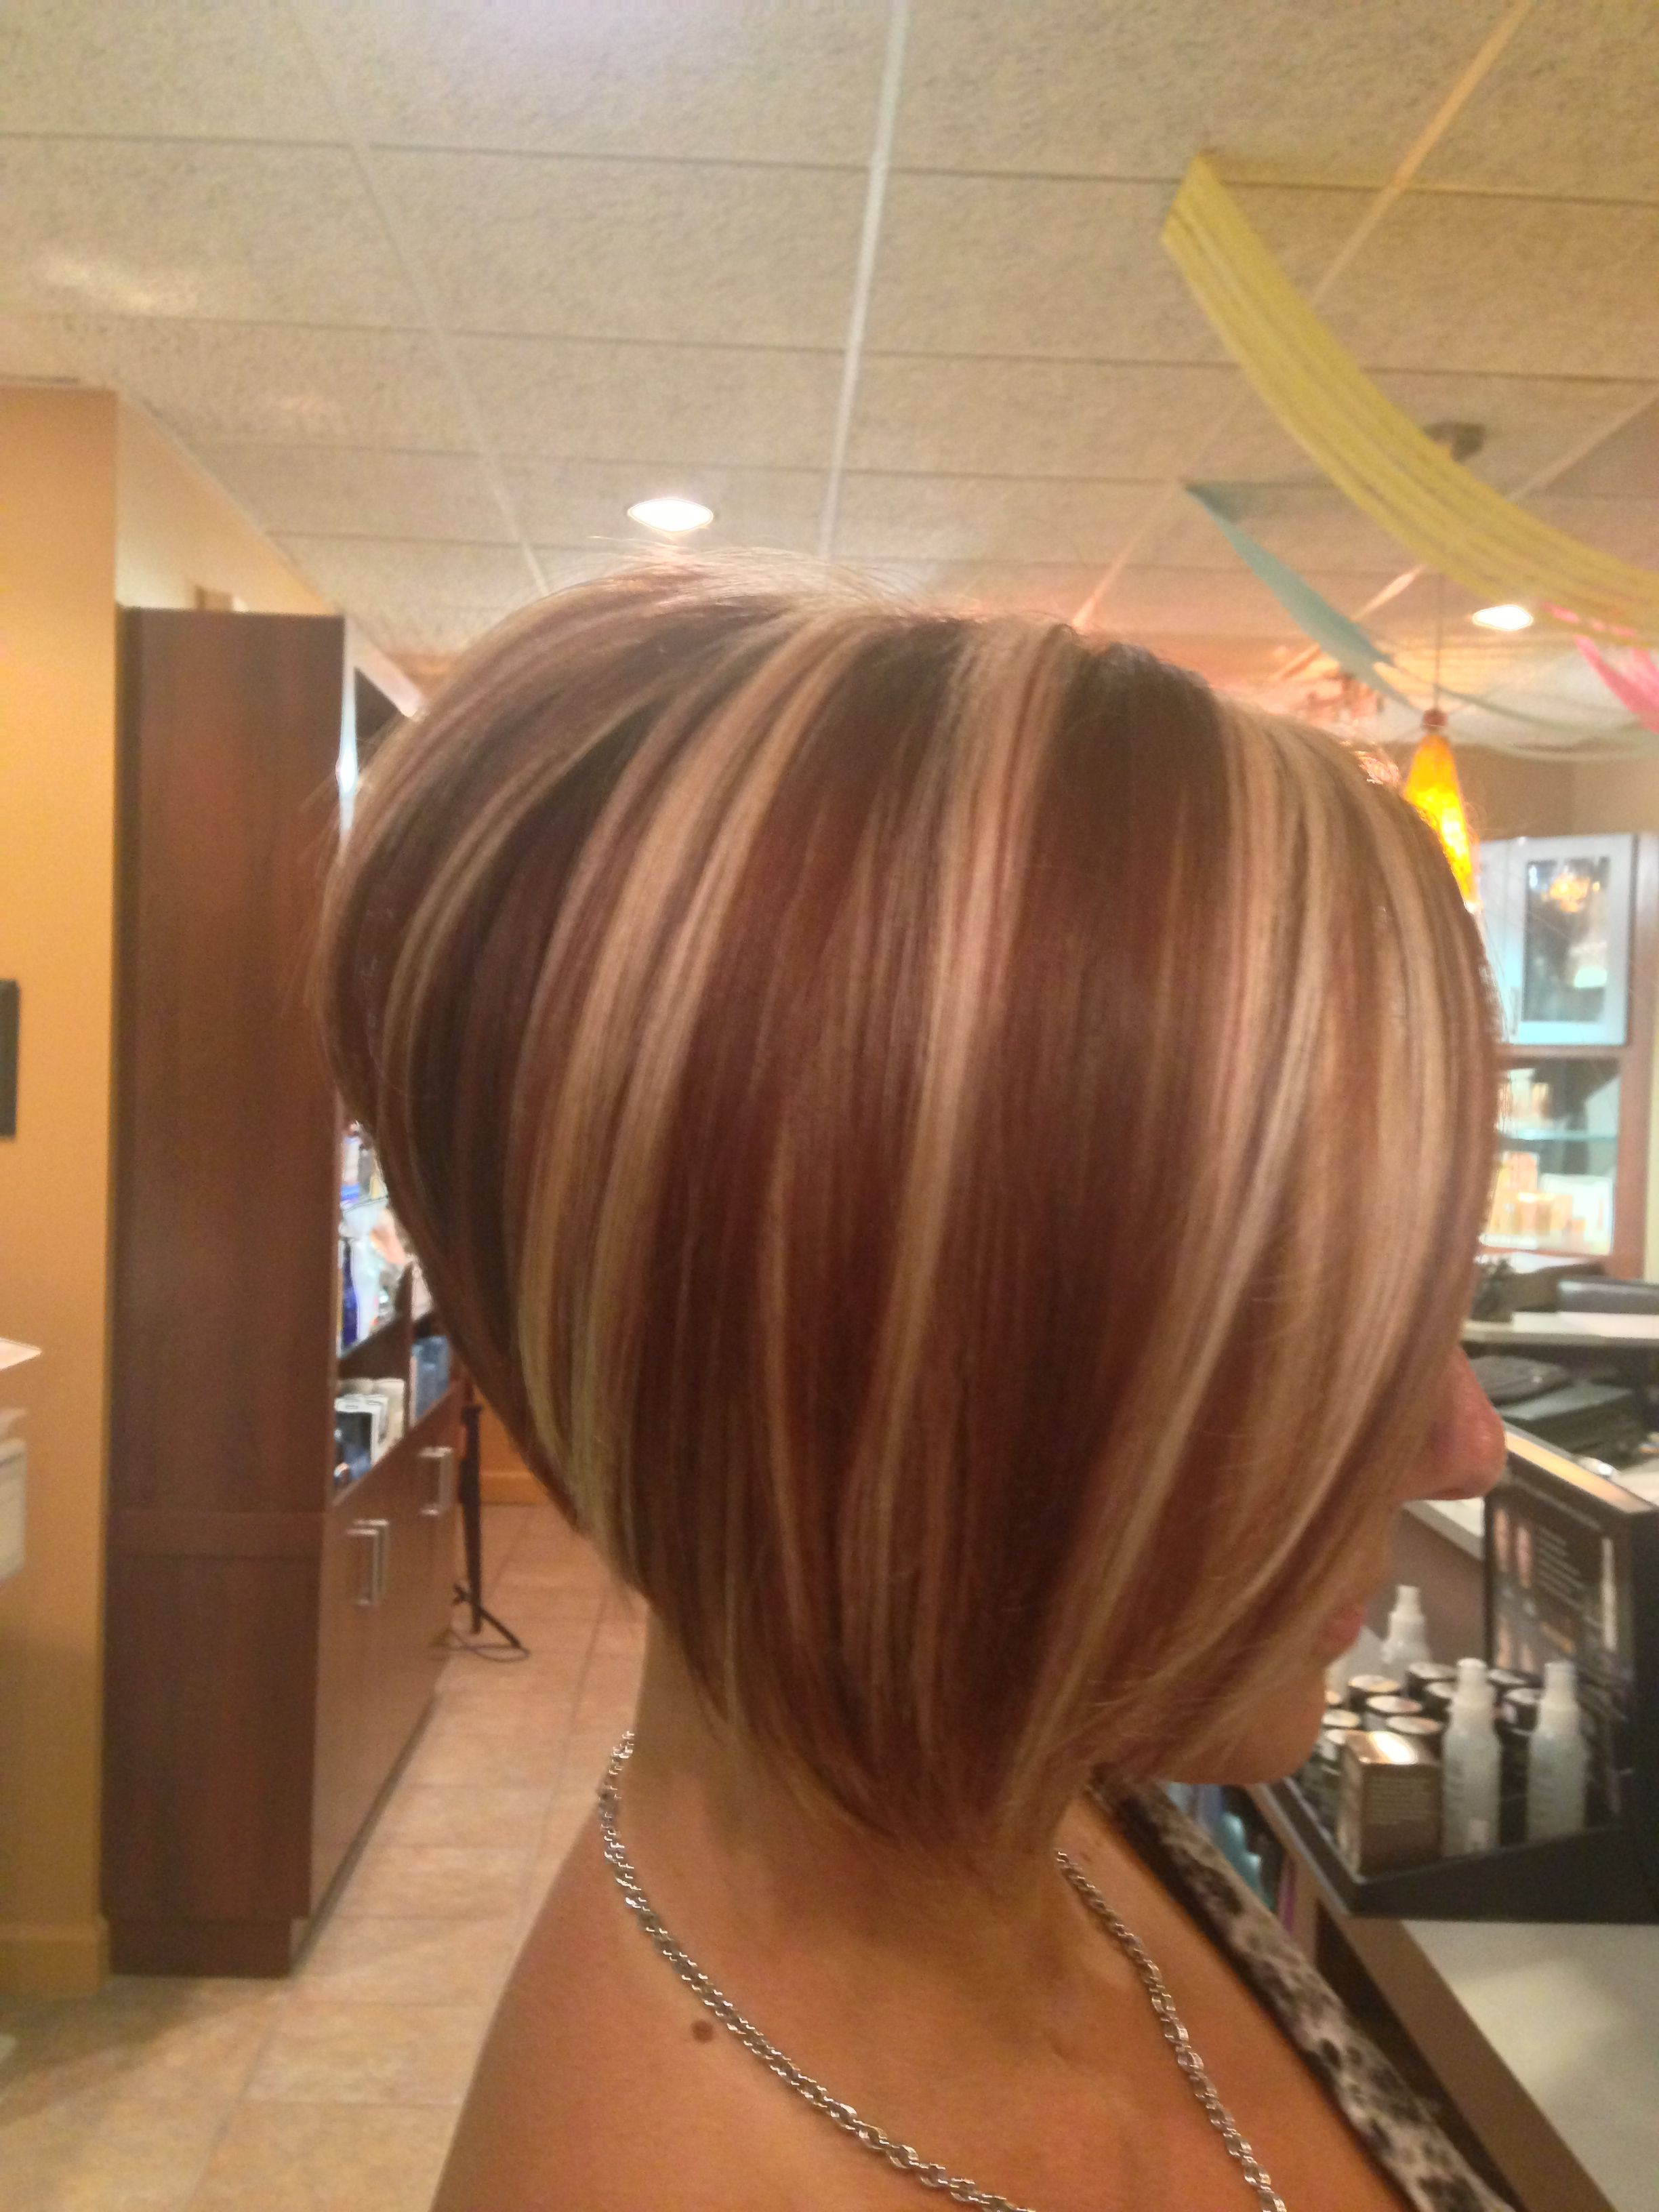 Mystic hair on dale mabry tampafl ask for cortney gorgeous